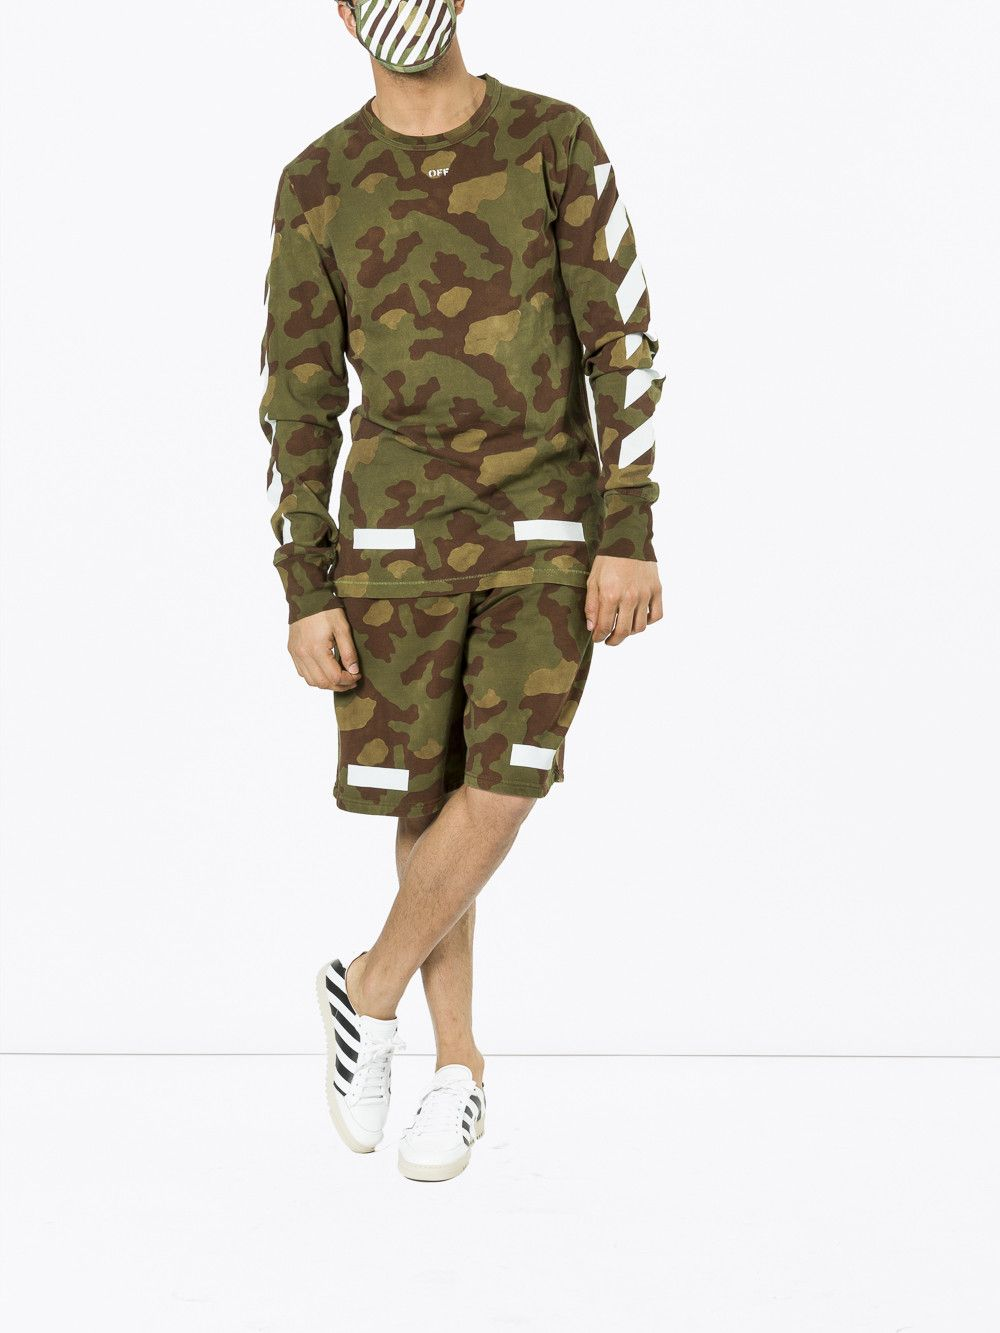 Off White Camouflage Long Sleeve T Shirt Off White Cloth Camouflage Shorts Shorts Long Sleeve Tshirt [ 1333 x 1000 Pixel ]